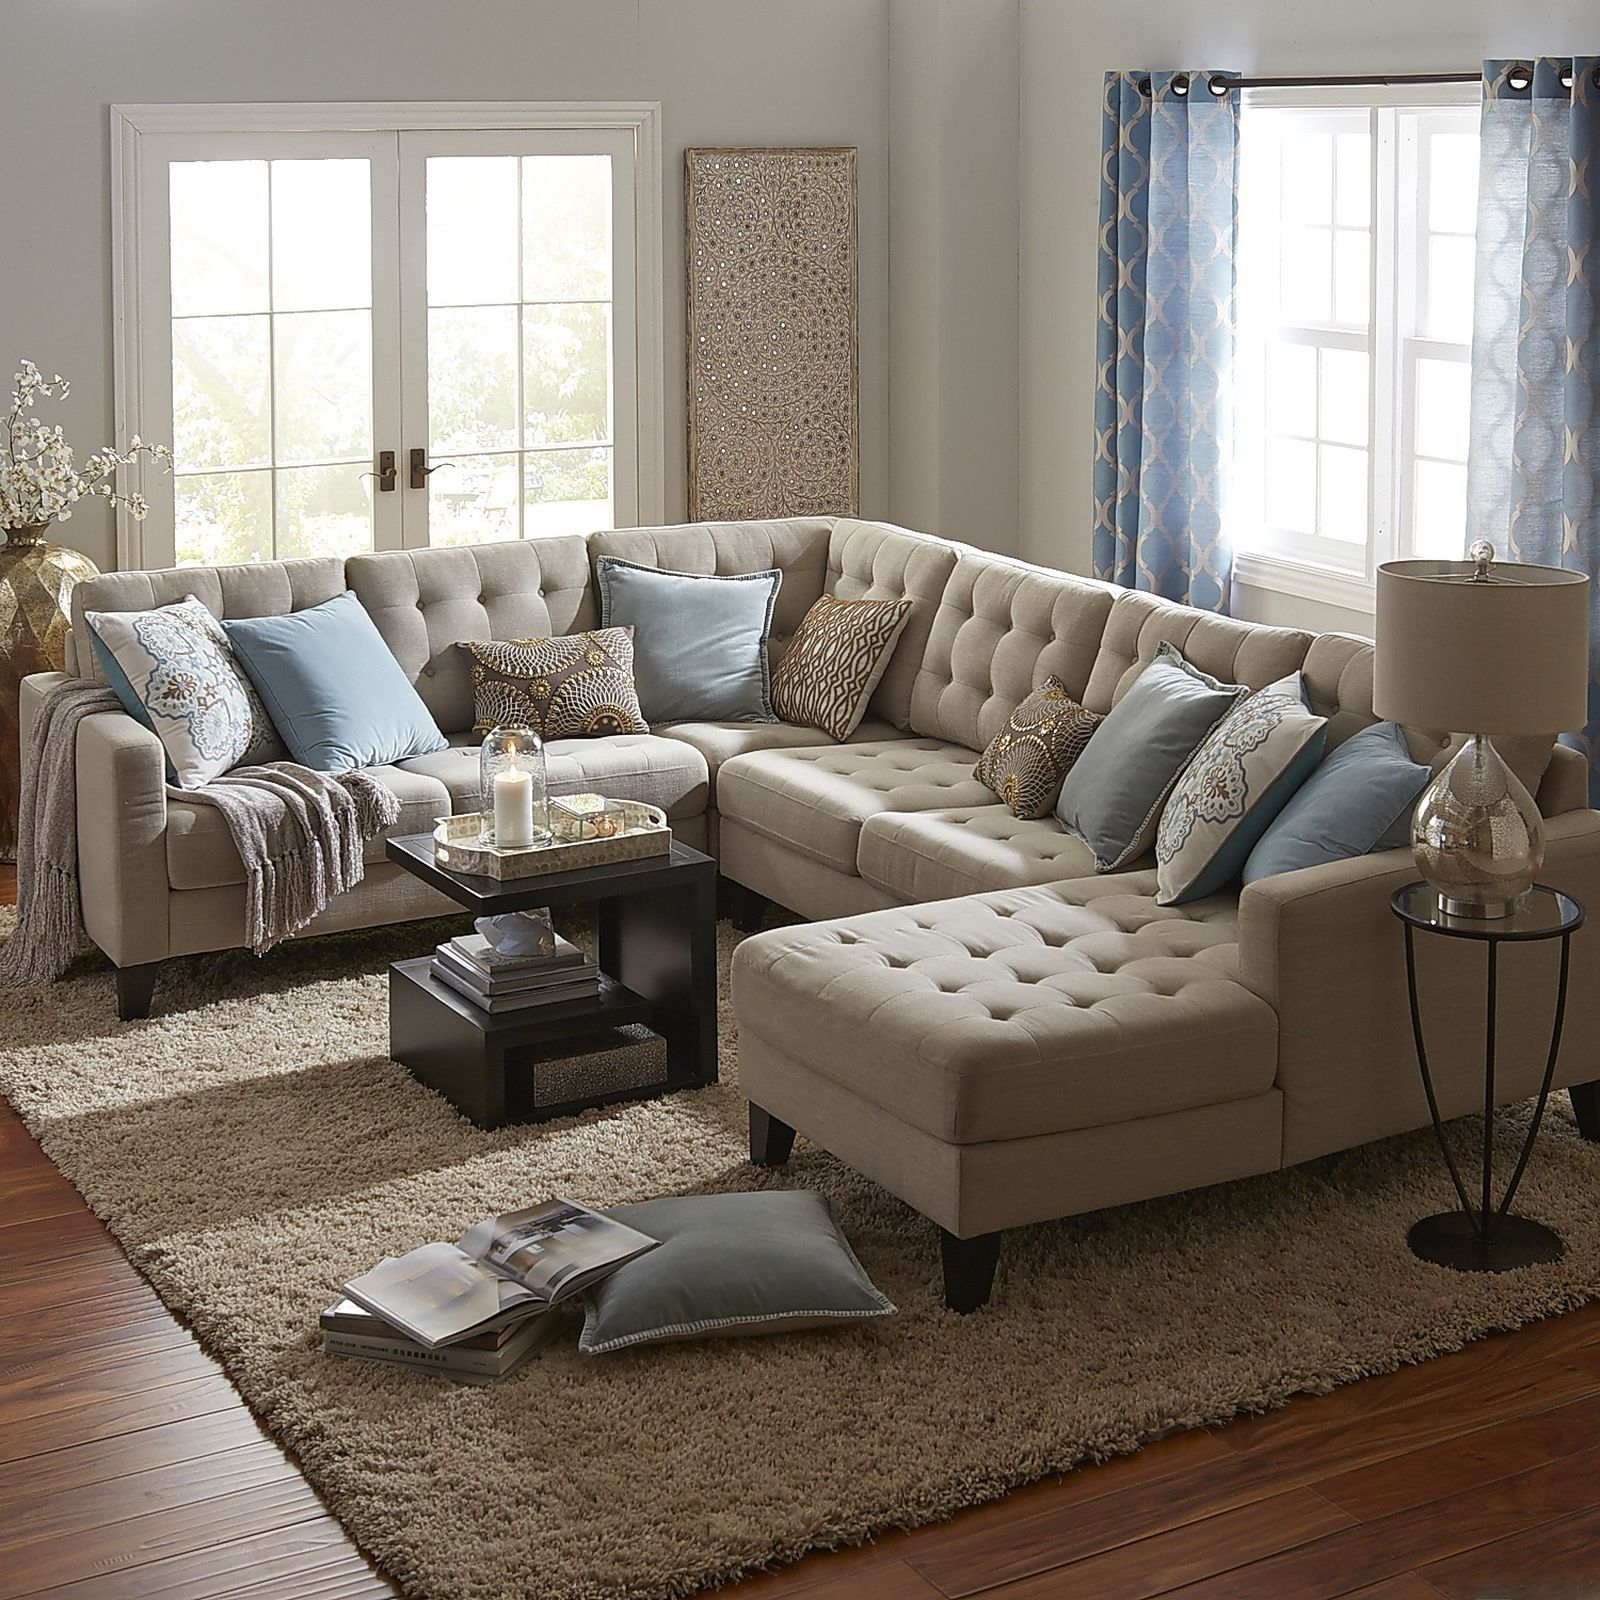 Build Your Own Nyle Stone Gray Sectional Collection